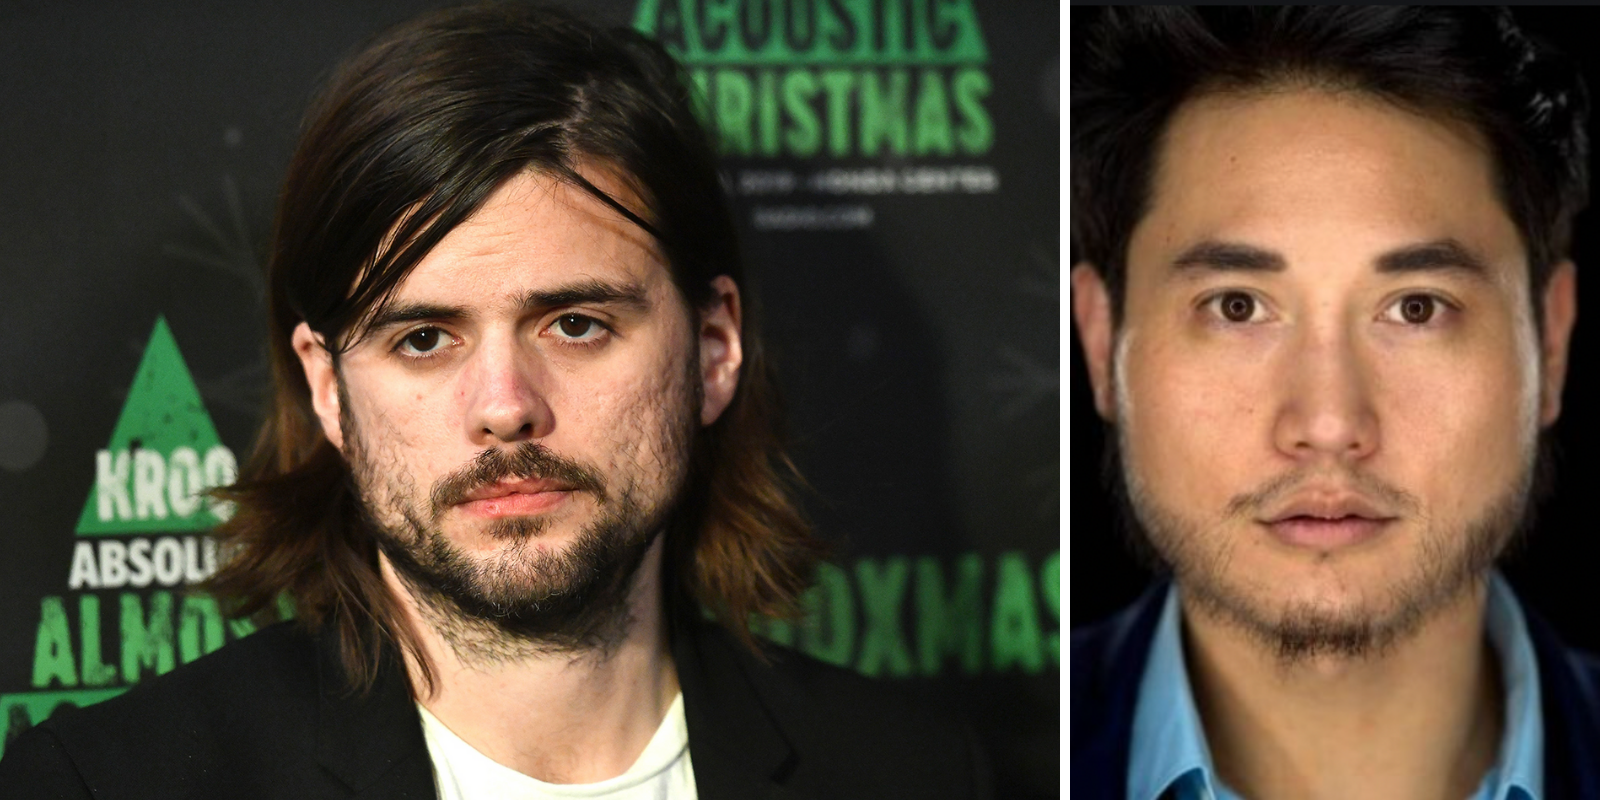 BREAKING: Winston Marshall officially leaves Mumford & Sons, condemns extremism, reaffirms Andy Ngo's bravery